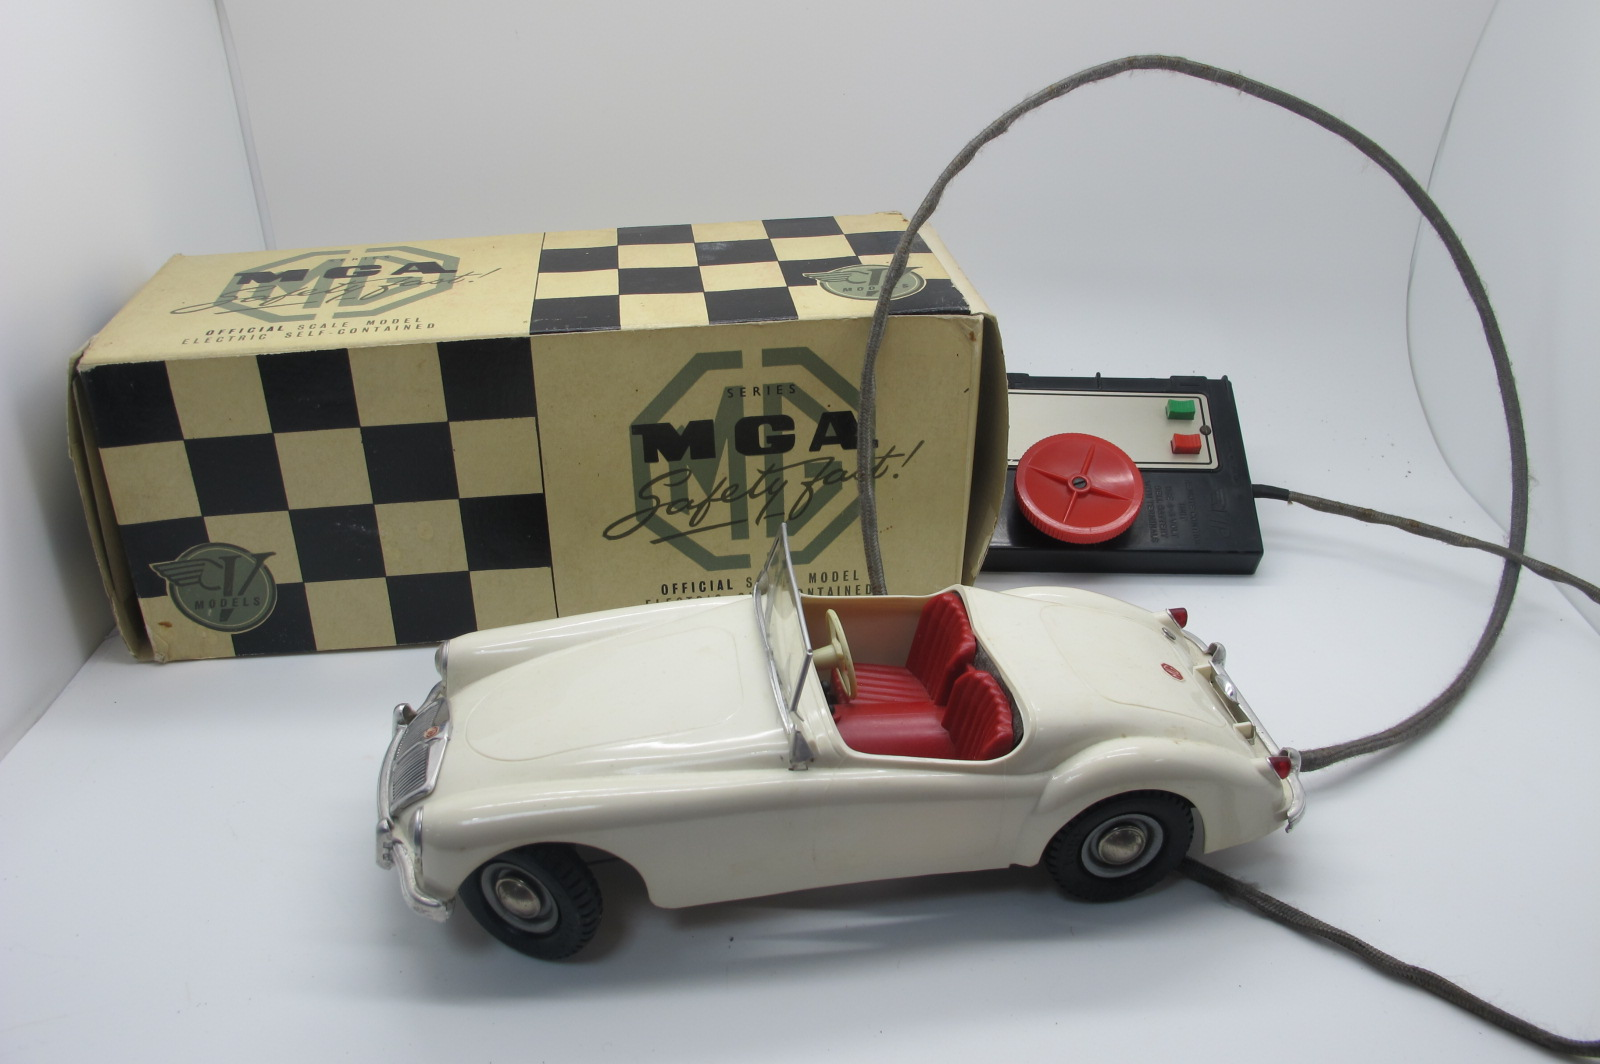 A Victory Industries Remote Control MGA, finished in white, appears complete but windscreen damaged,